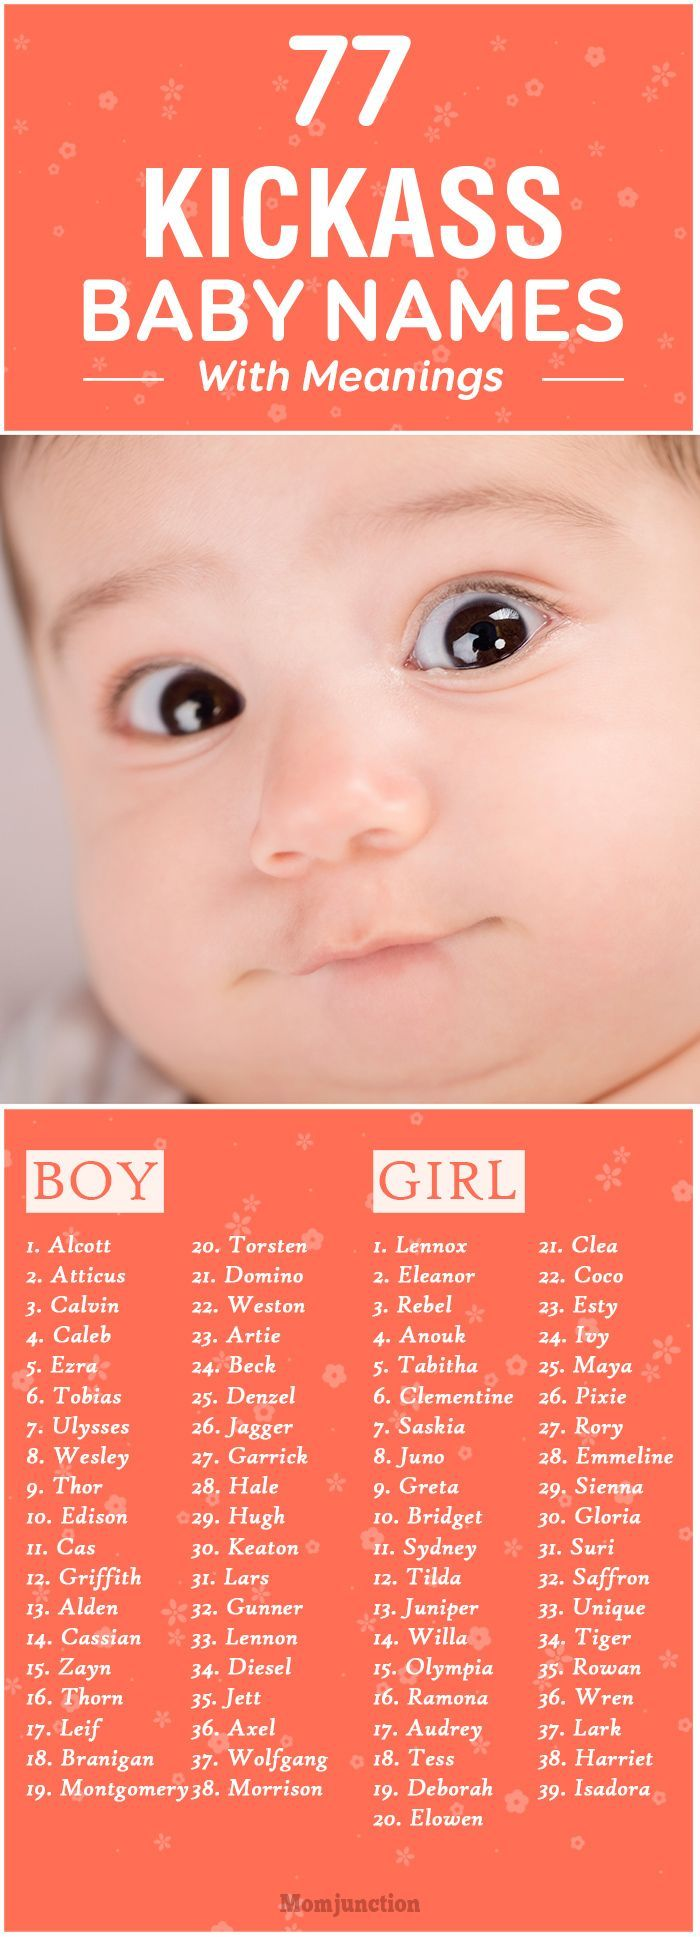 77 Kickass Baby Names For Girls And Boys With Meanings